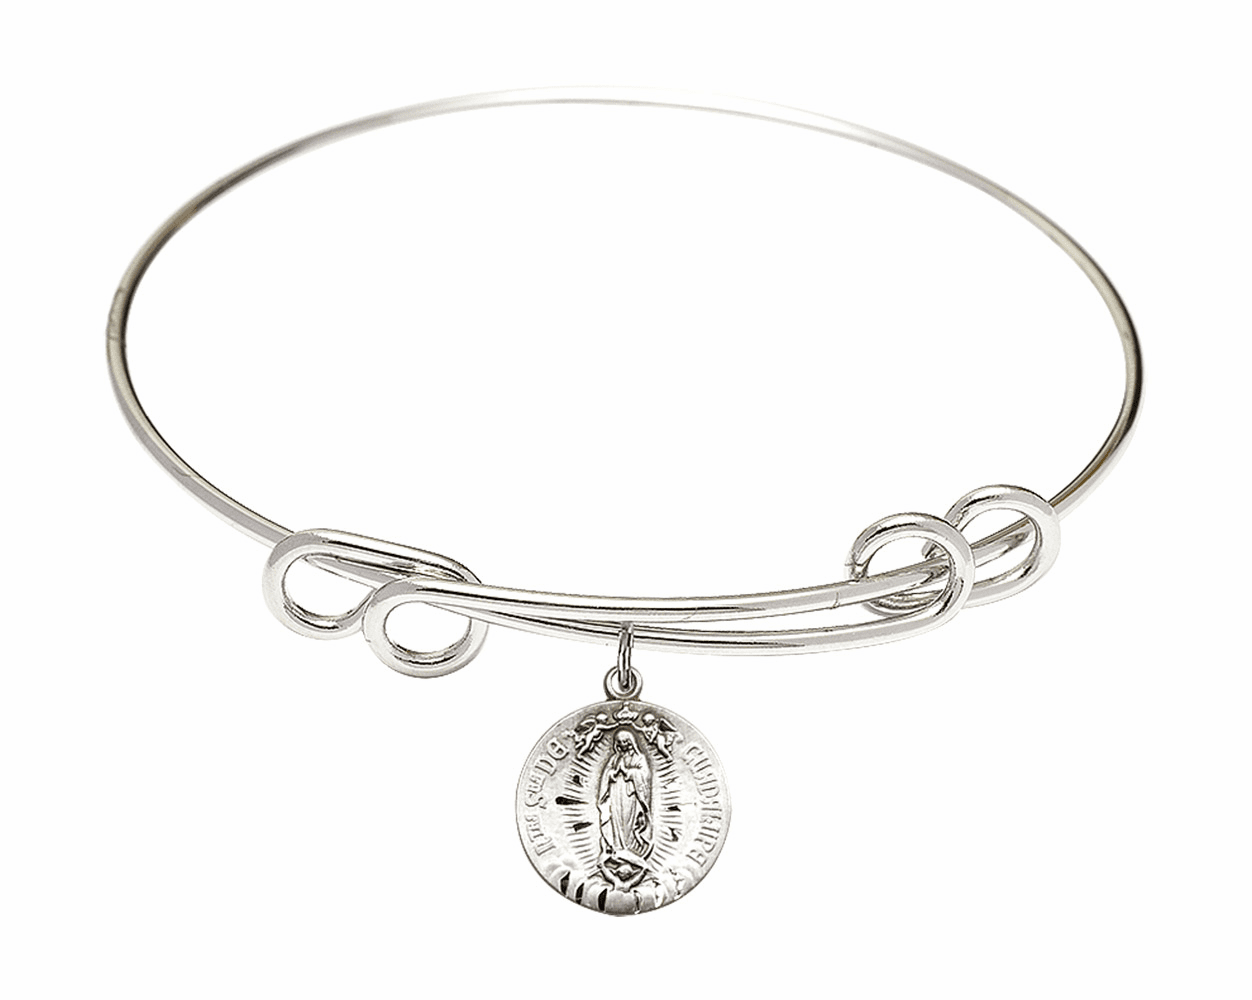 Round Double Loop Bangle Bracelet w/Our Lady of Guadalupe Sterling Silver Charm by Bliss Mfg